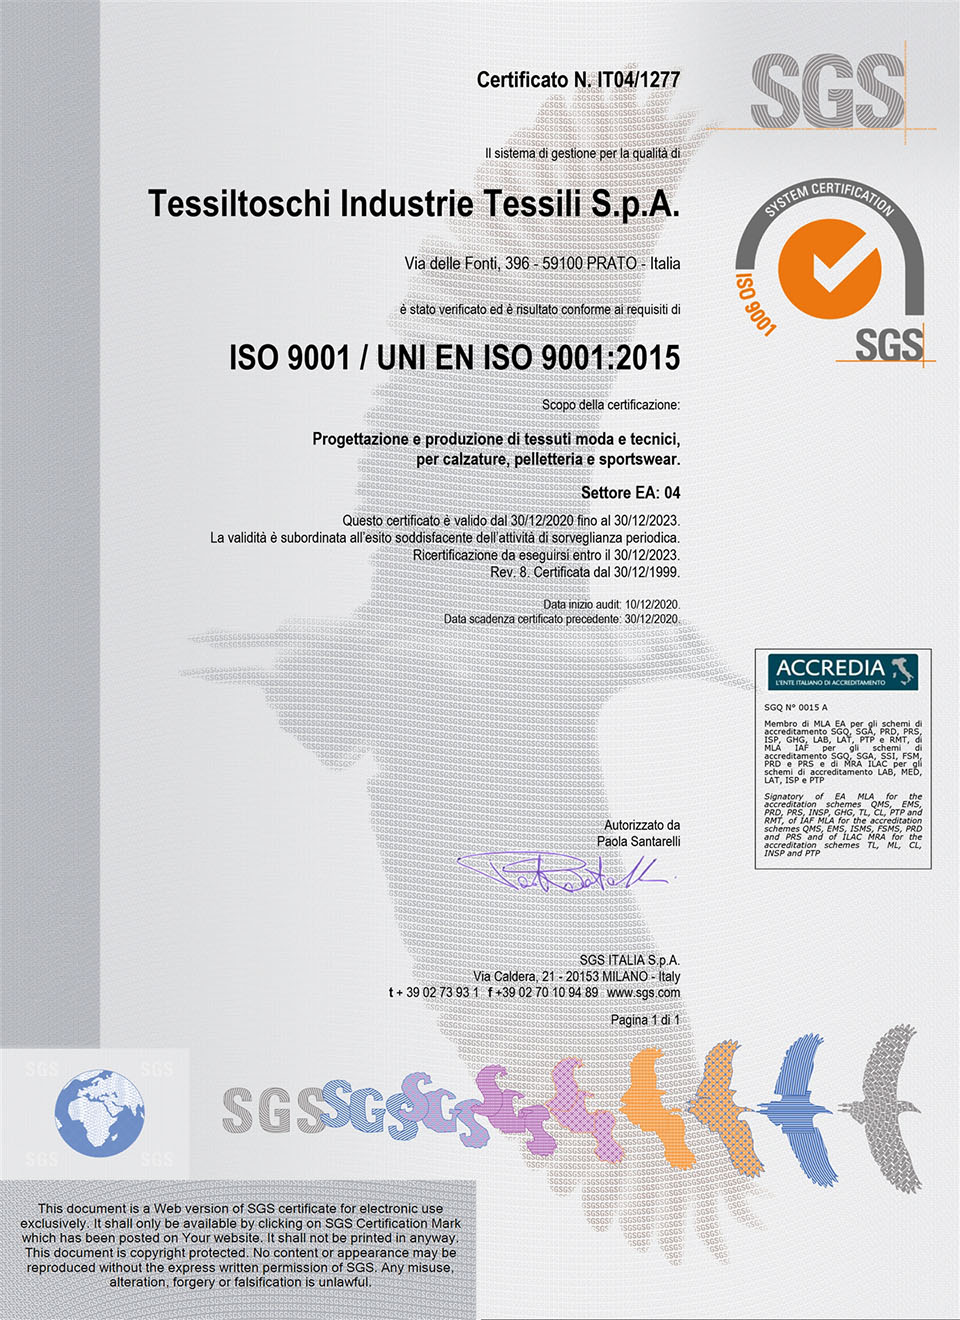 Tessiltoschi UNI-ISO Certified